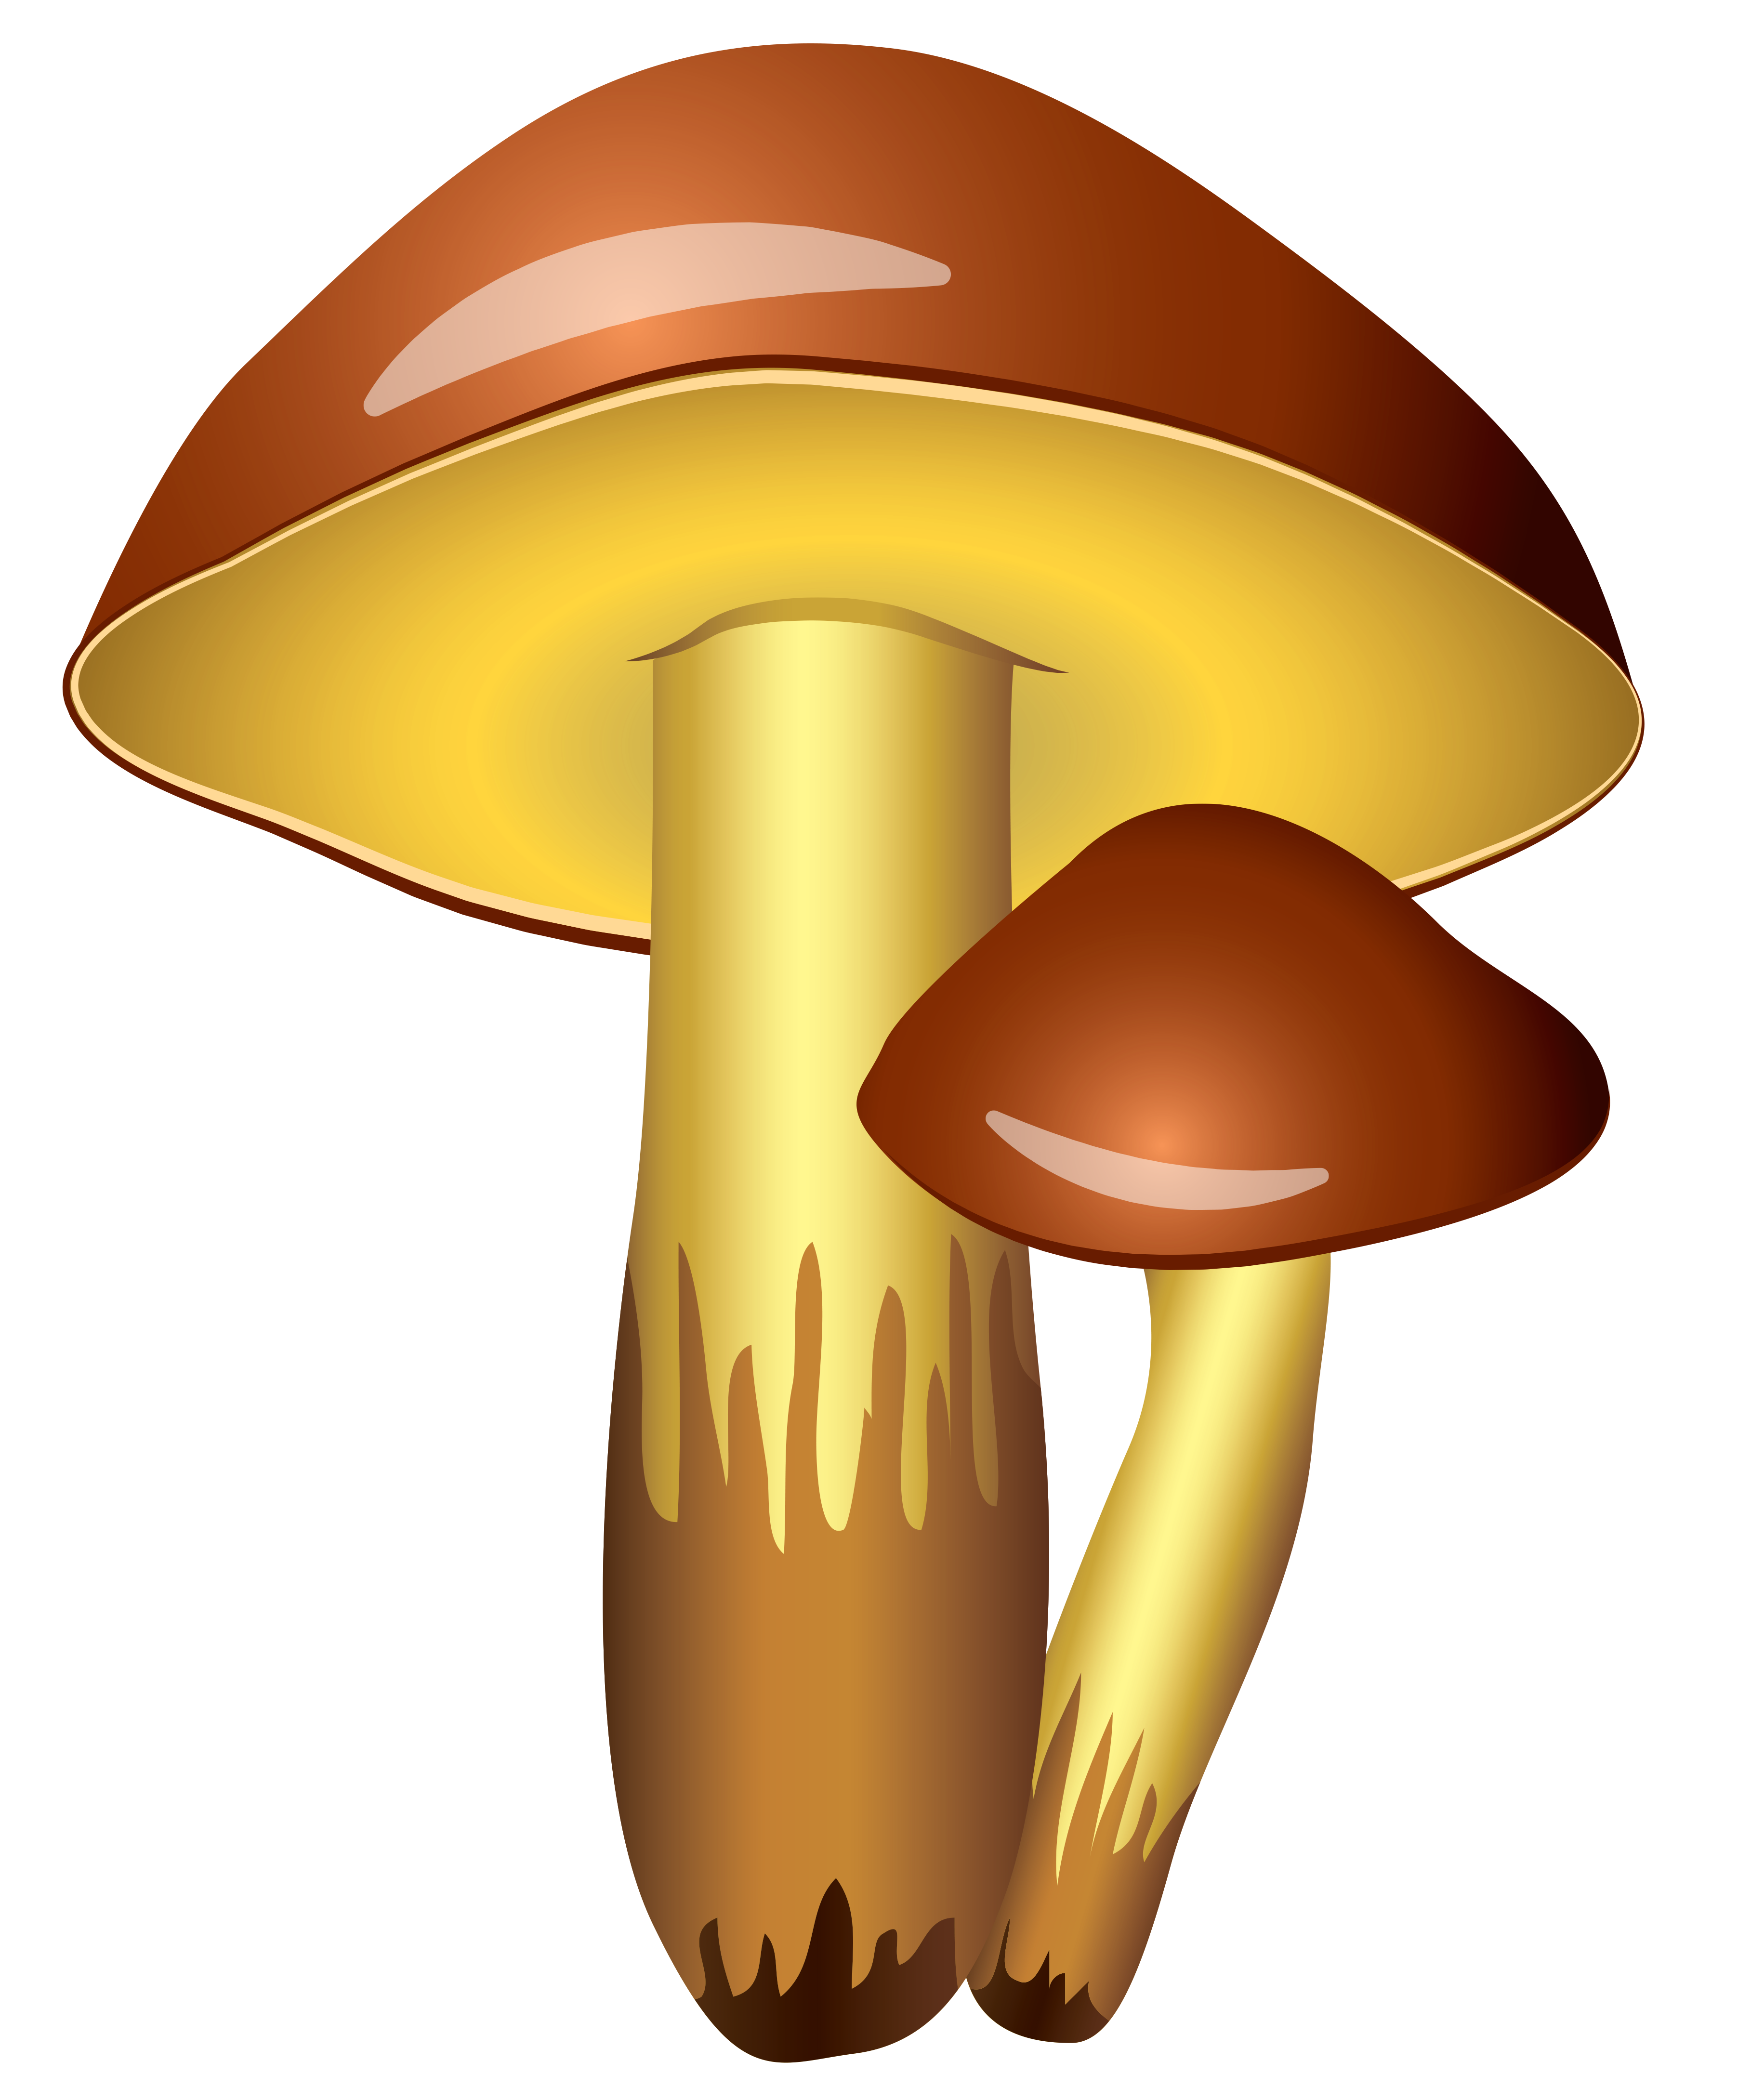 png transparent library Mushroom clipart agaricus. Mushrooms transparent png picture.